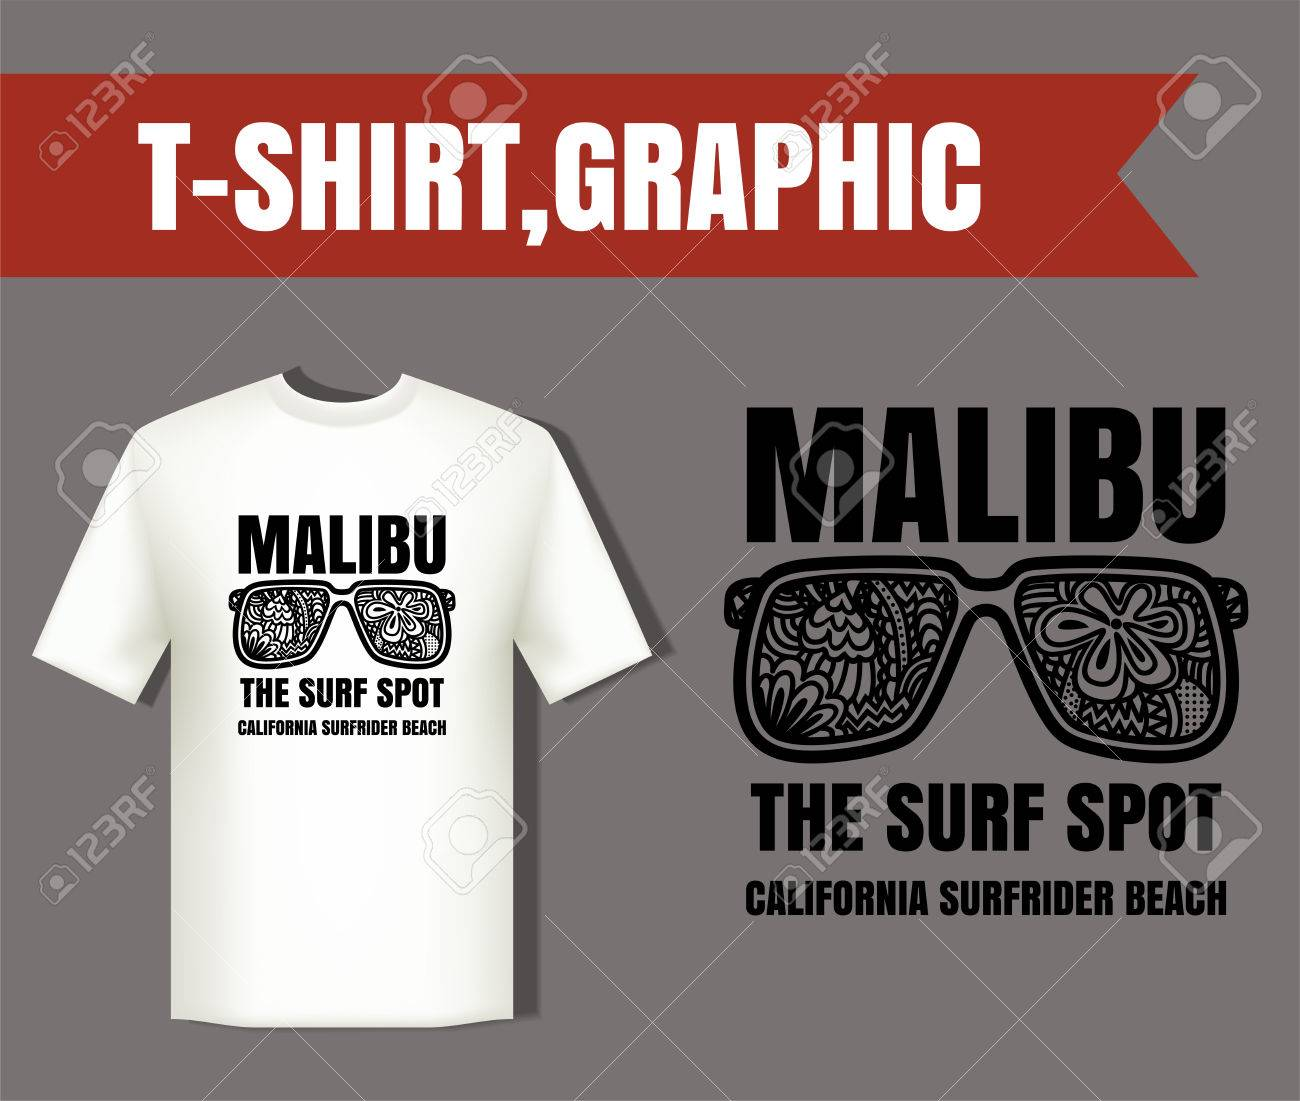 0d6b50adc8b7 Malibu surf typography and glasses eye zentangle style  t-shirt graphics  vectors  Stock